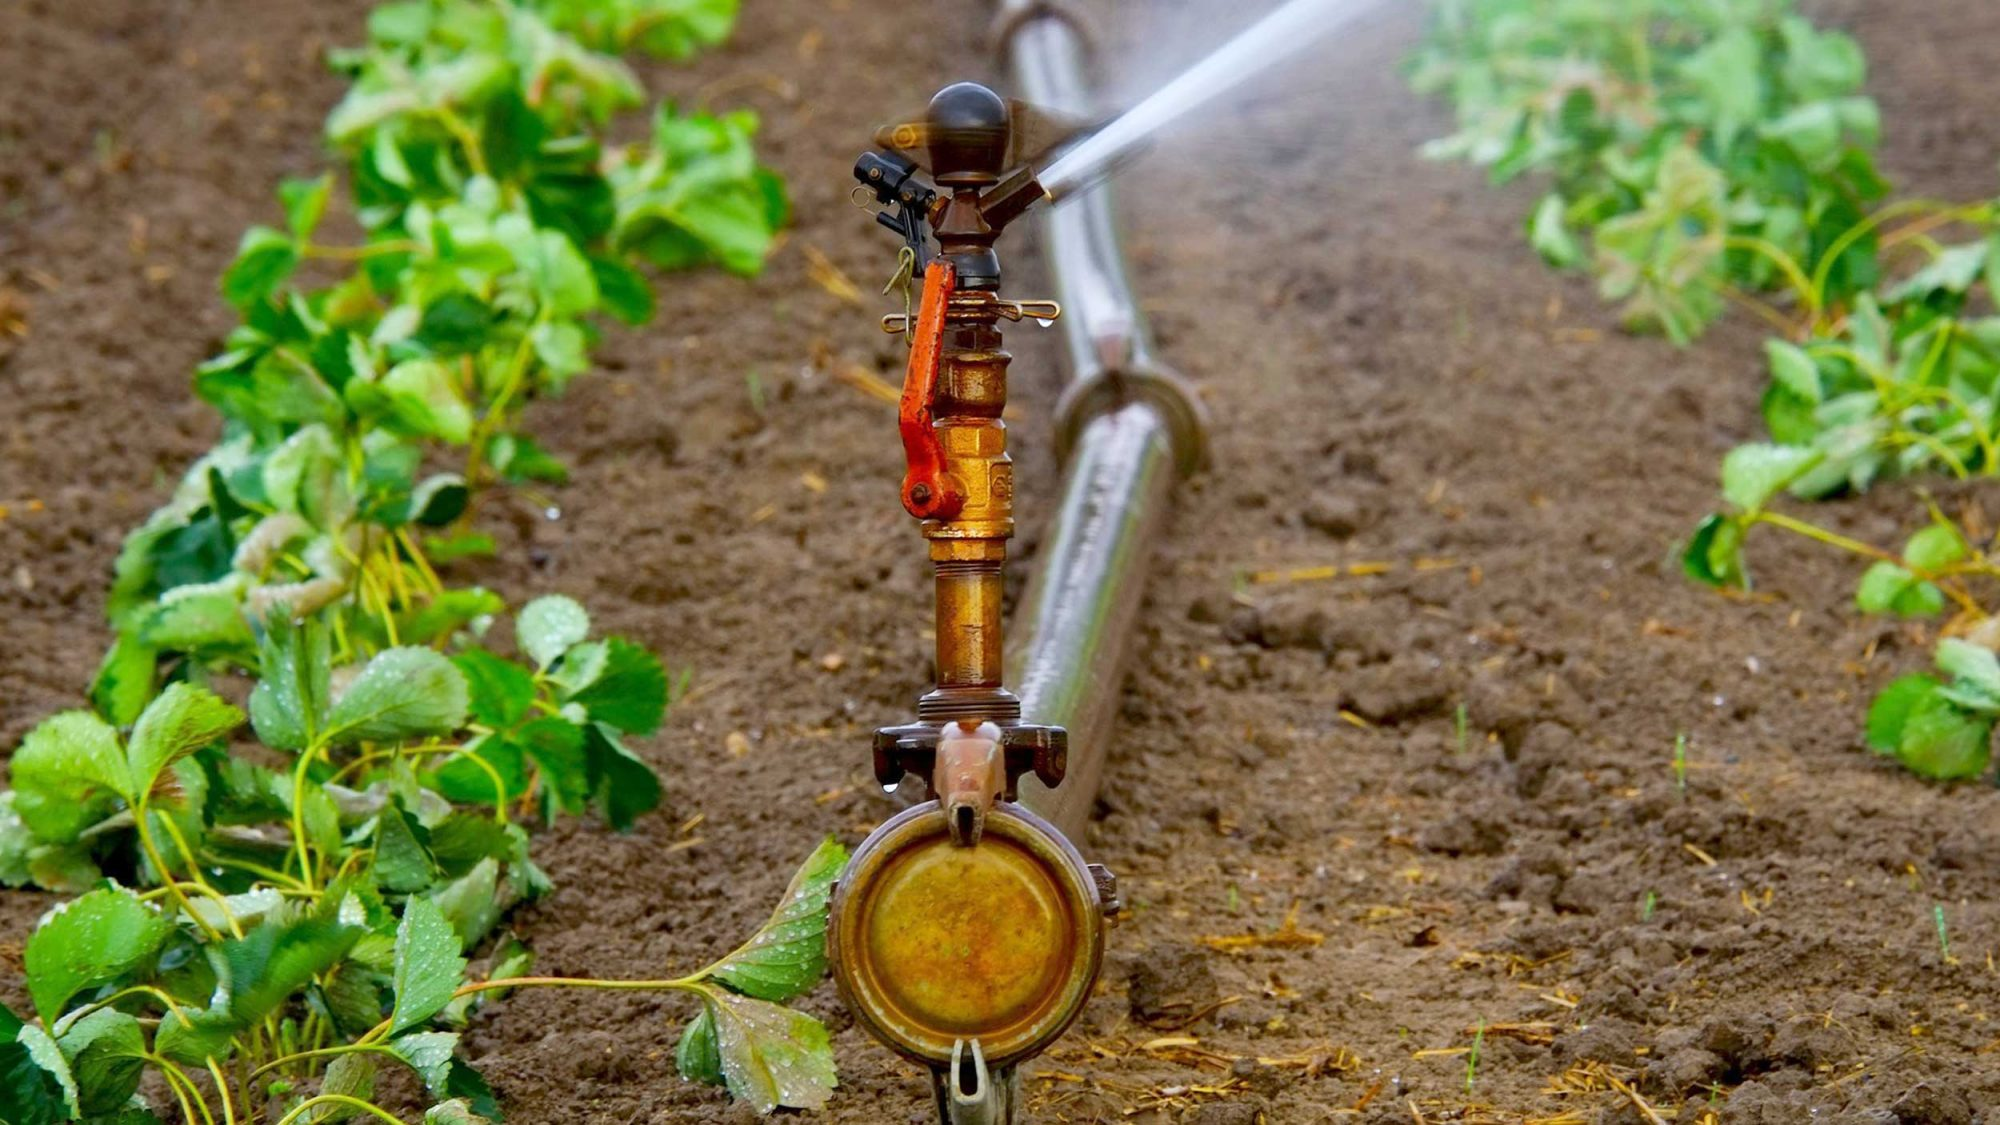 Strawberries being irrigated with water